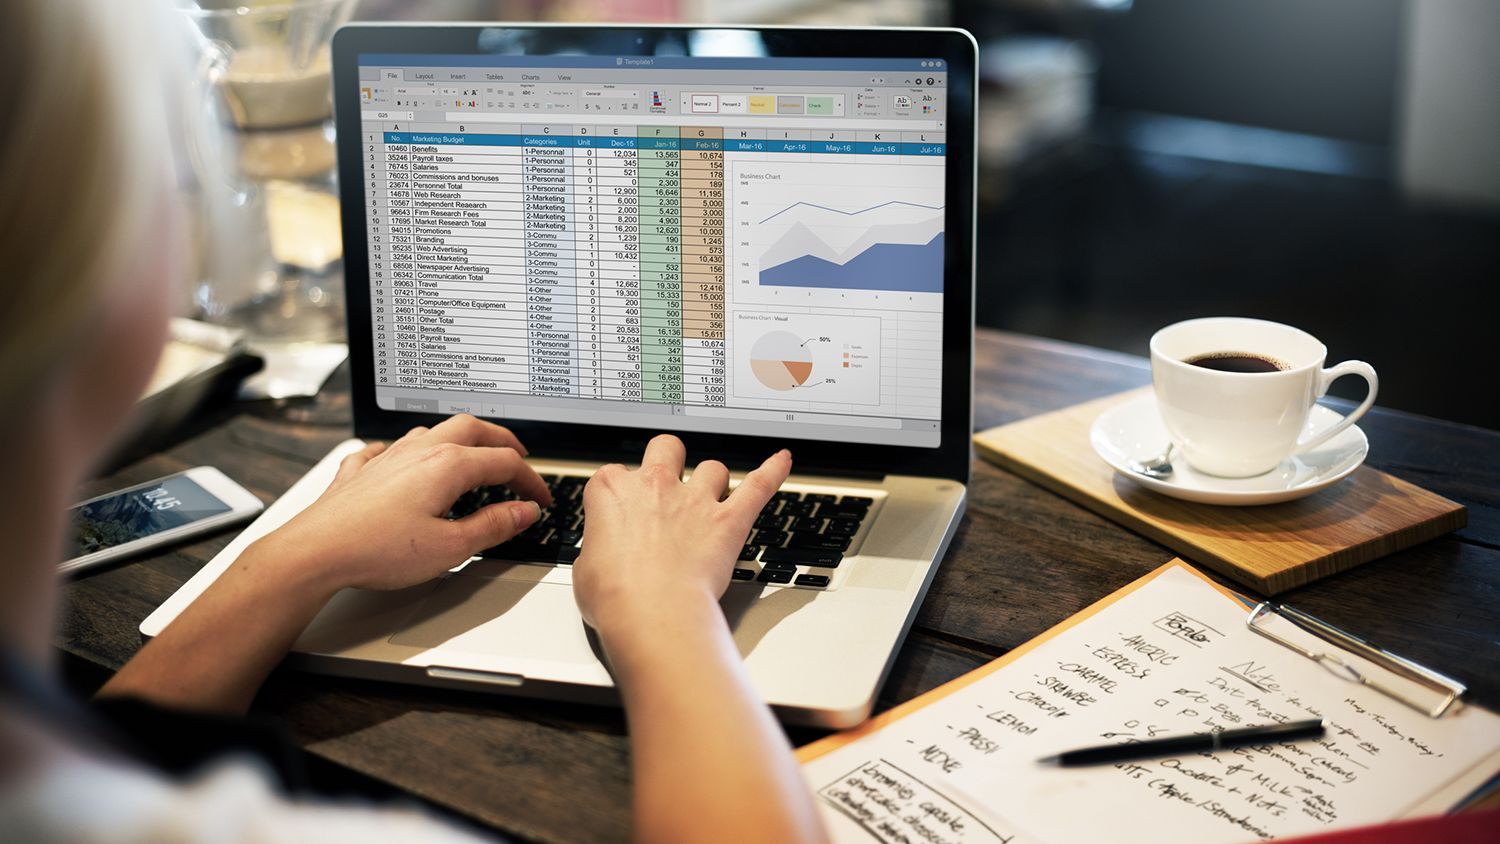 Make Spreadsheets a Whole Lot Easier With This Excel Trick